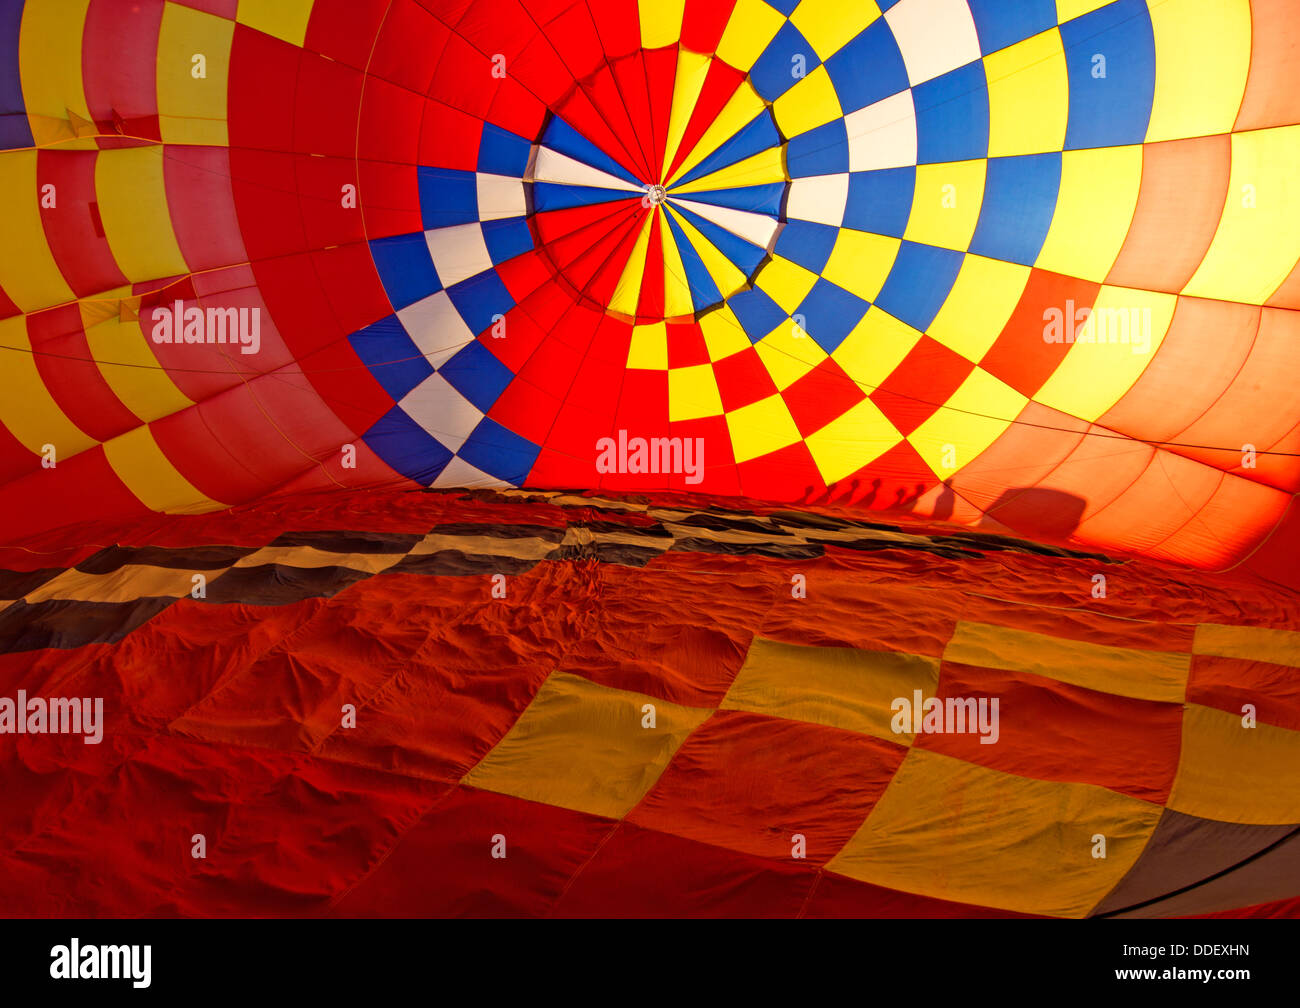 Inside of a hot air balloon during inflation. - Stock Image